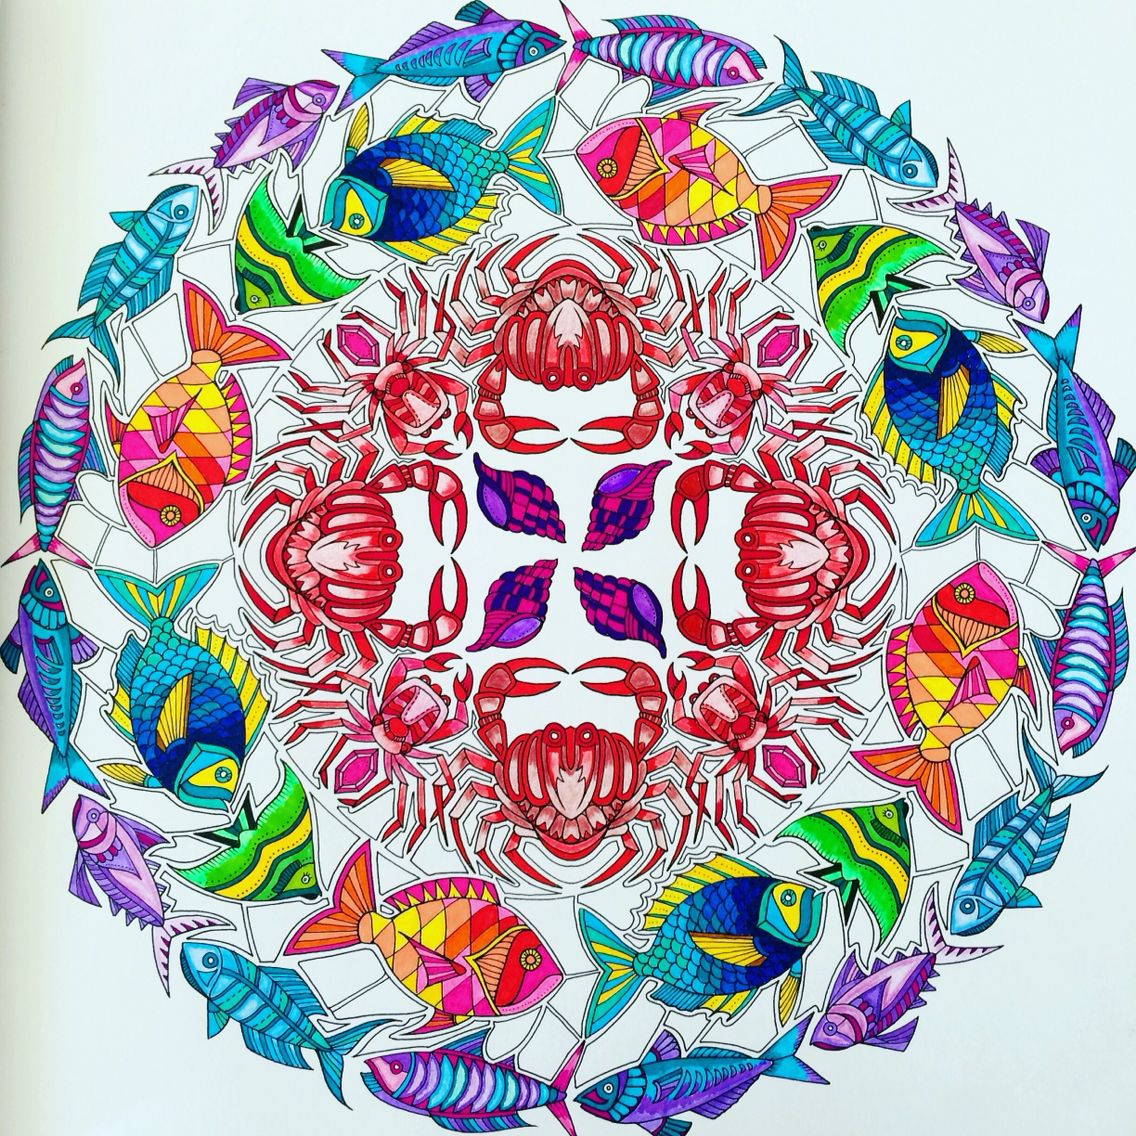 How to color grown up coloring books - Lostocean Coloring Book Join Fb Grown Up Coloring Group I Like To